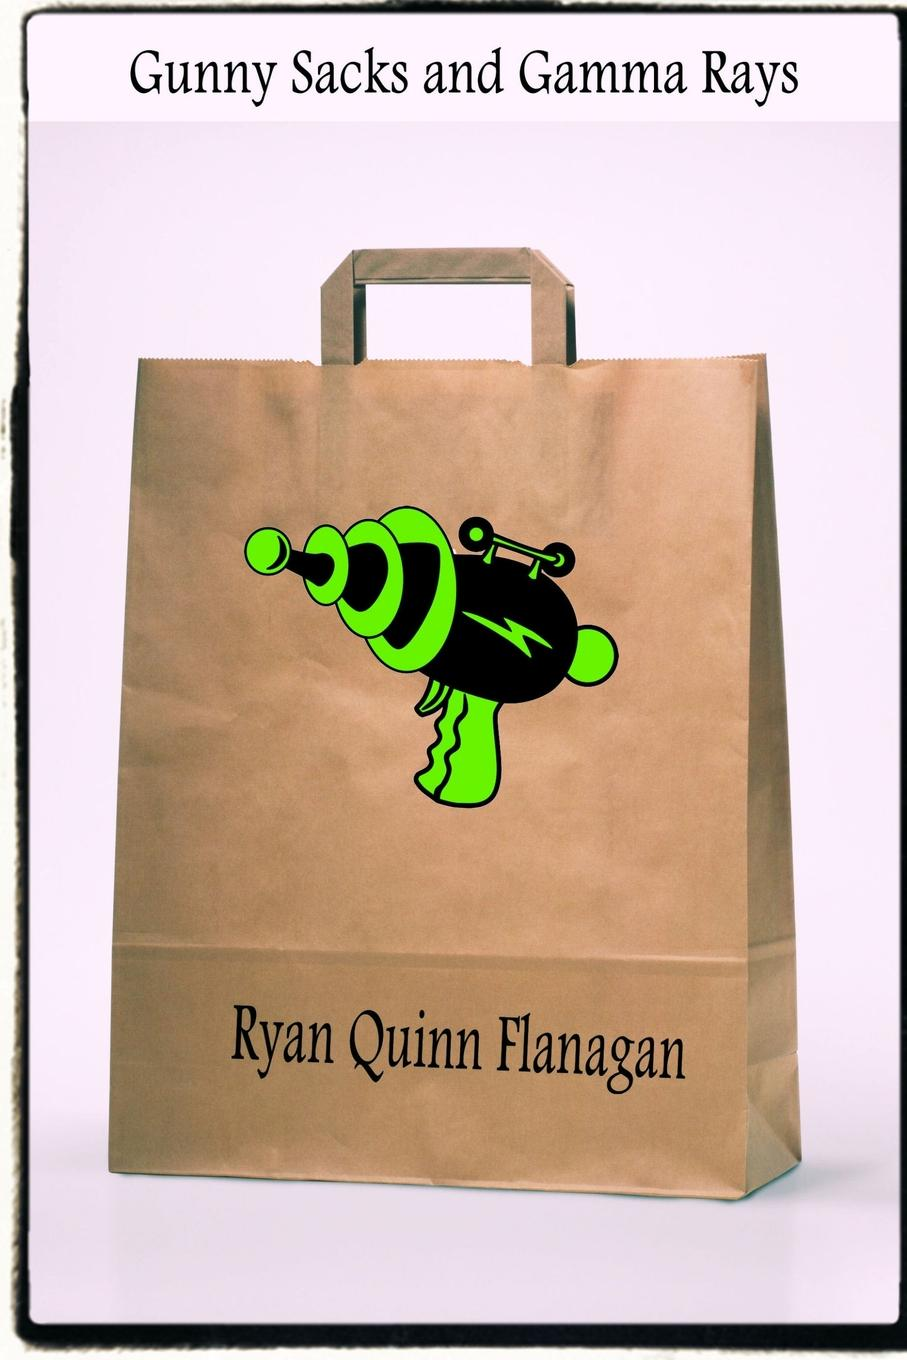 Ryan Quinn Flanagan Gunny Sacks and Gamma Rays